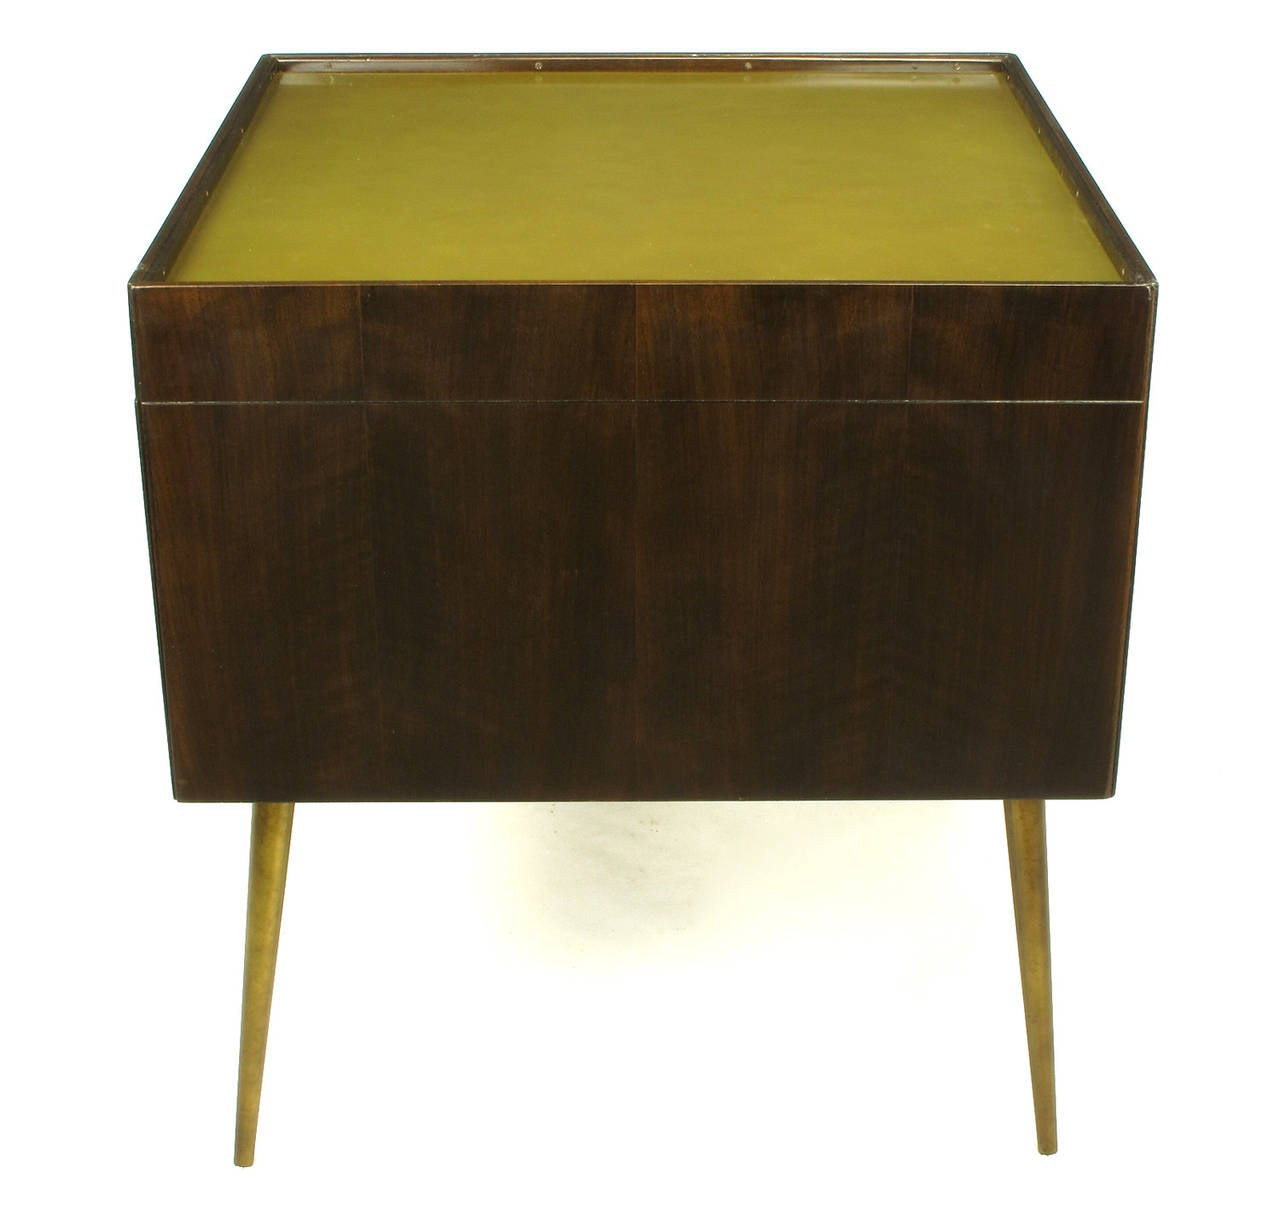 Bert England Orientation Group Walnut and Brass Bar Cabinet for John Widdicomb In Excellent Condition For Sale In Chicago, IL